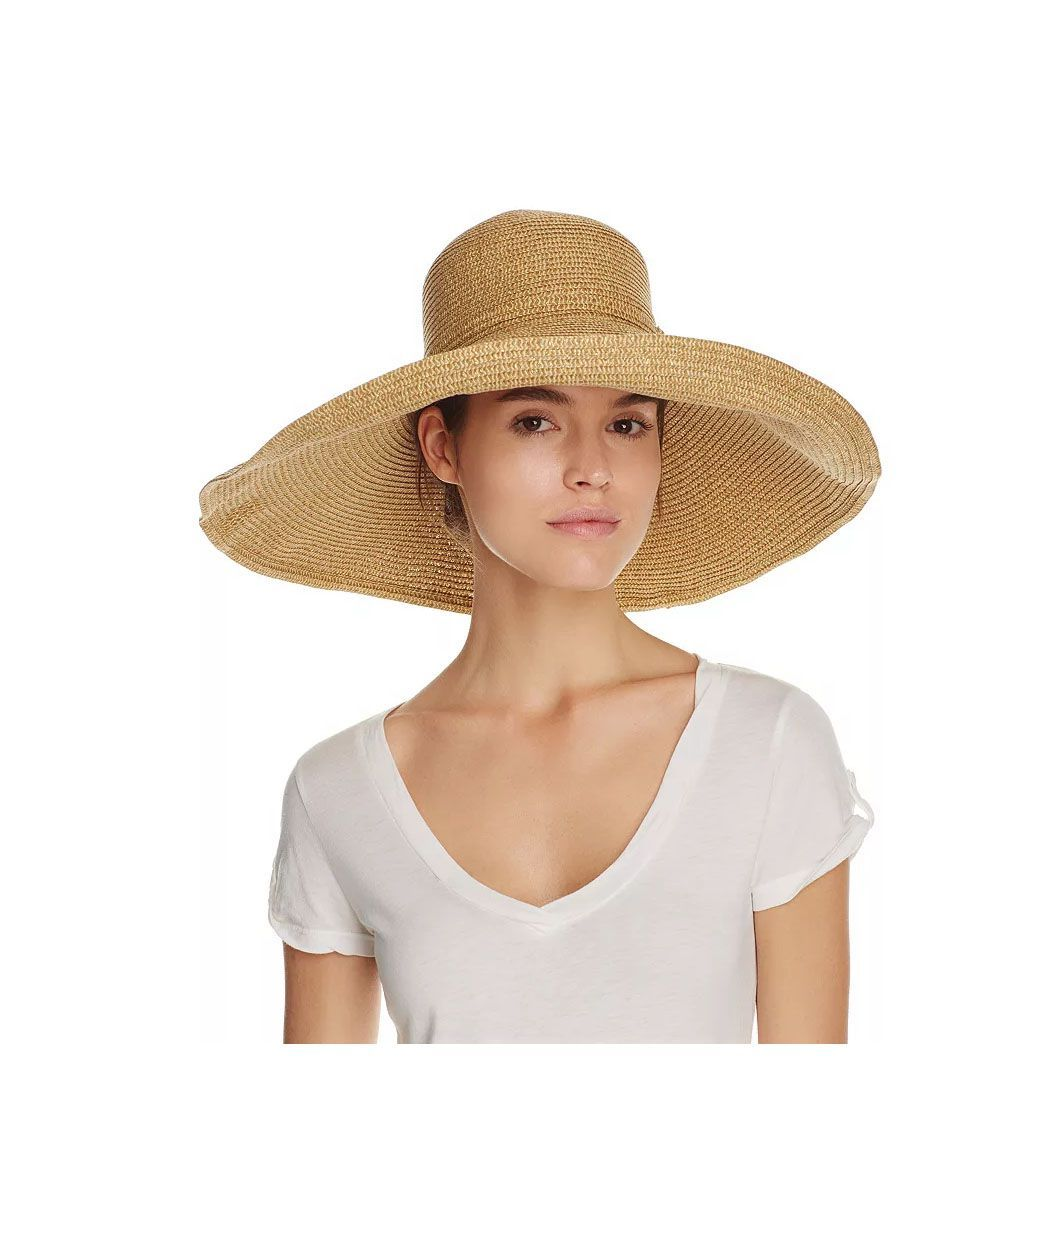 3775fa19961 20 Best Sun Hats for Summer 2019 - Floppy